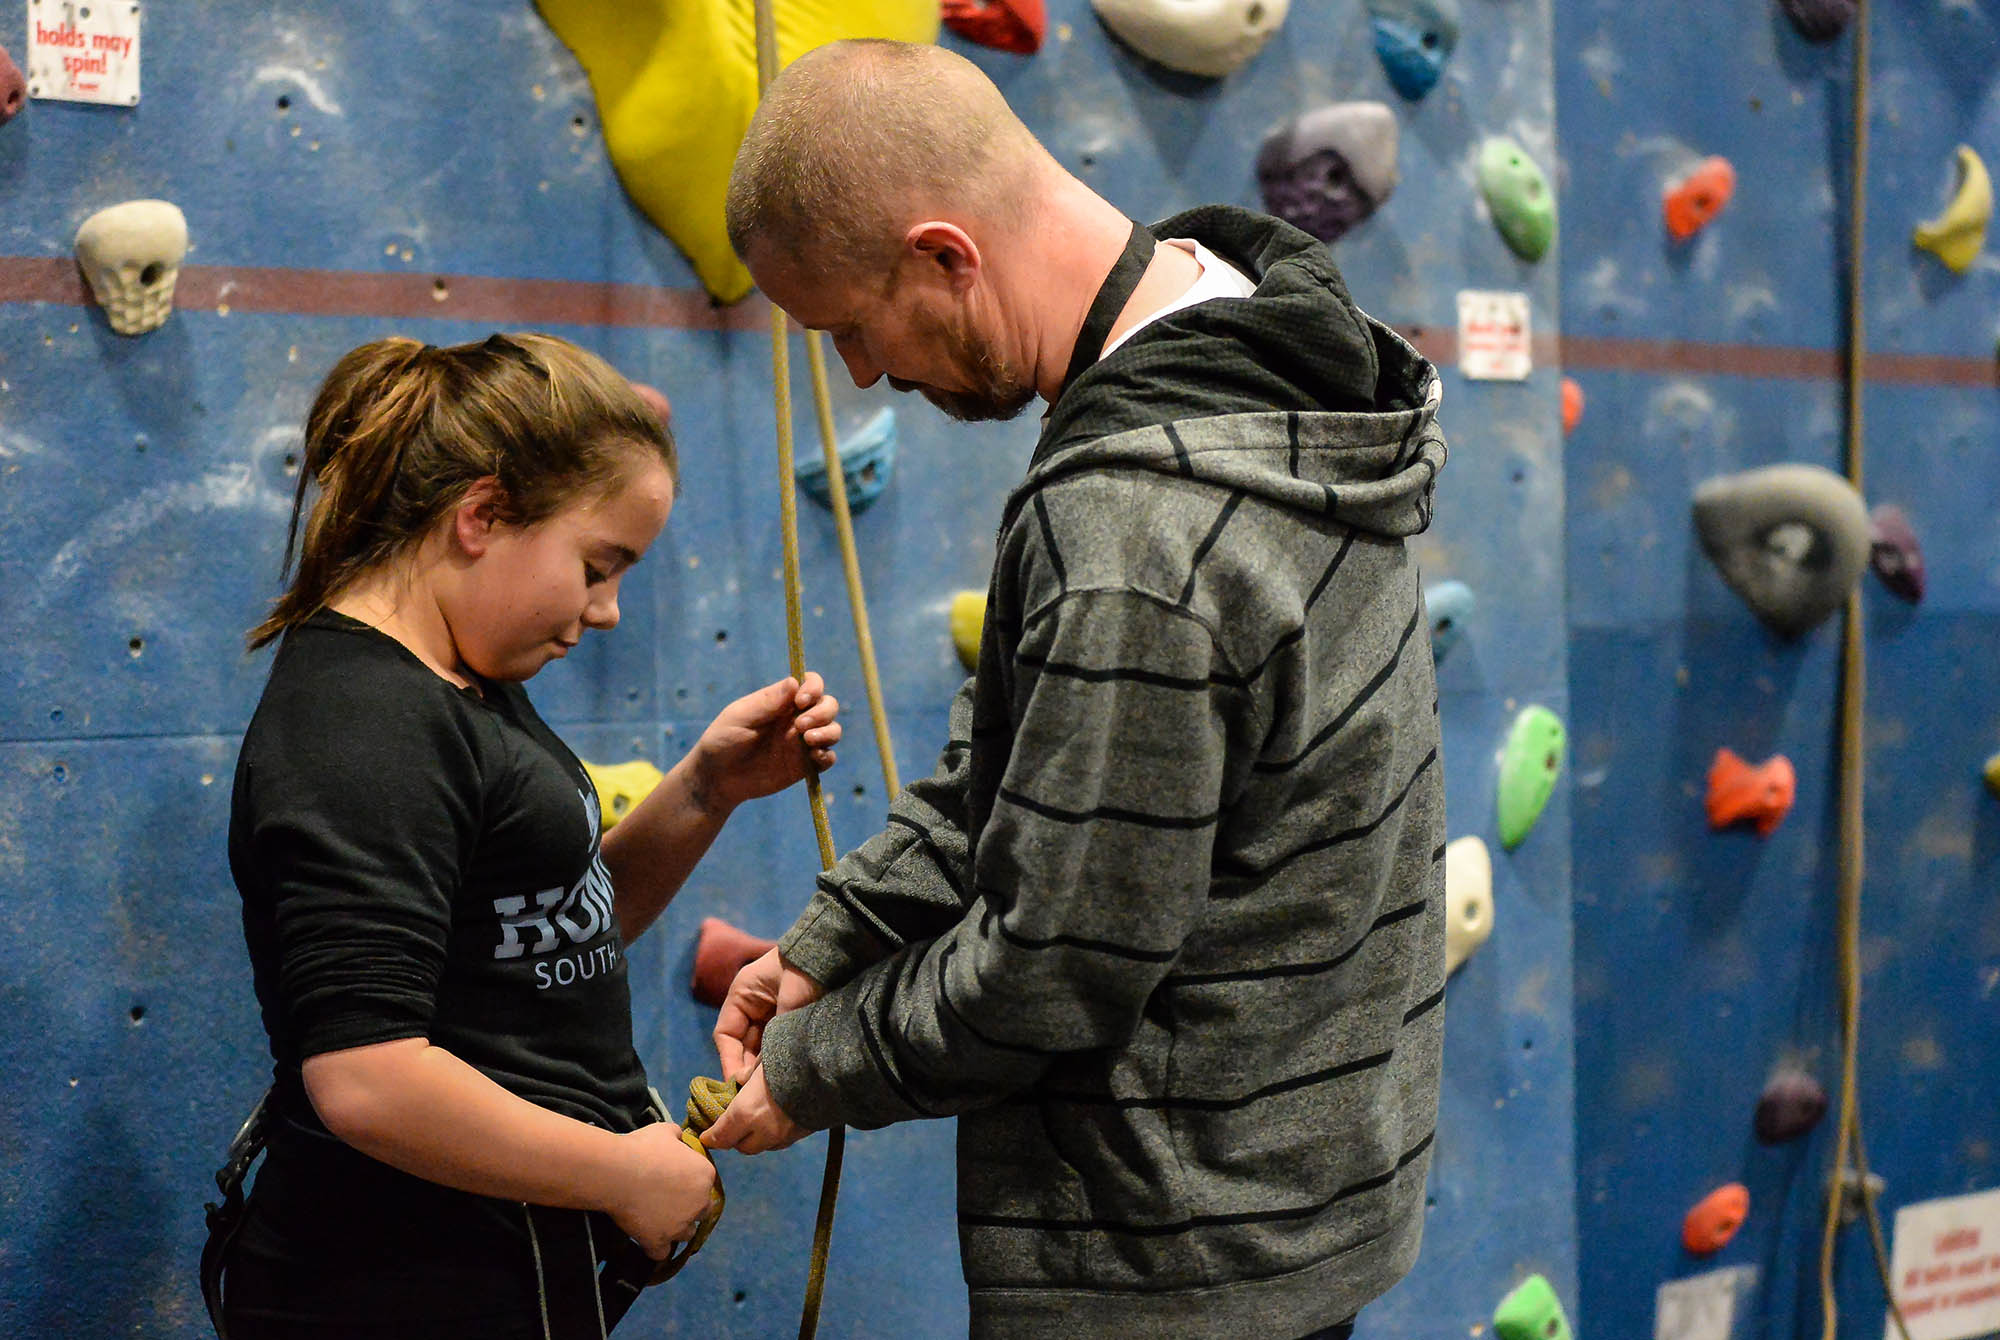 man instructor helping girl into climbing harness